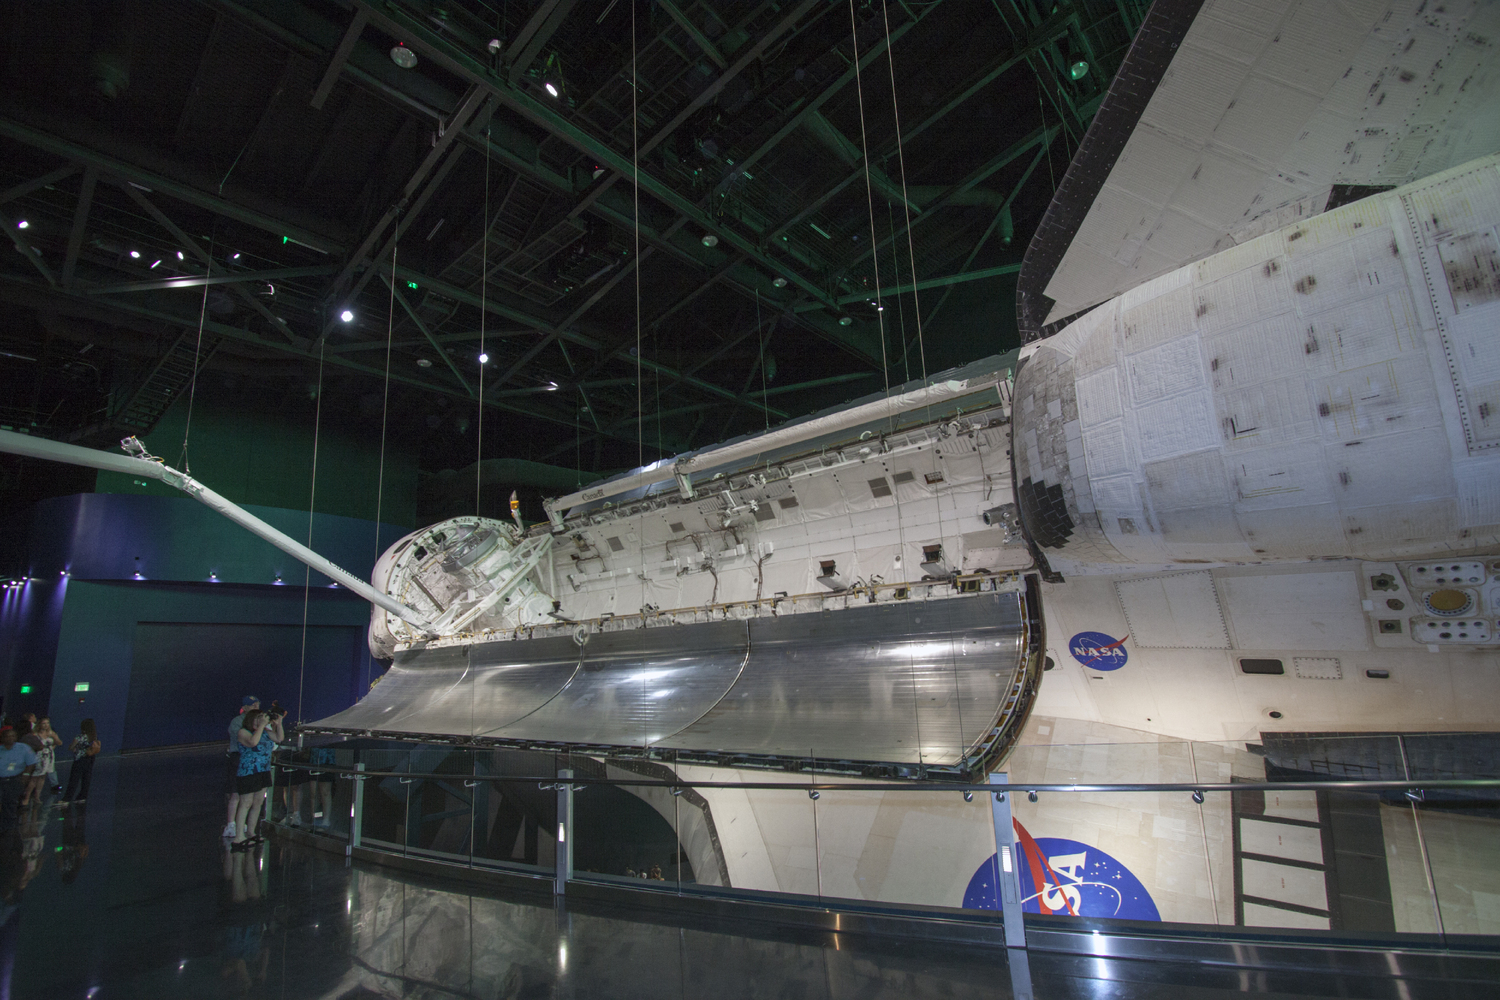 Viewing Shuttle Atlantis